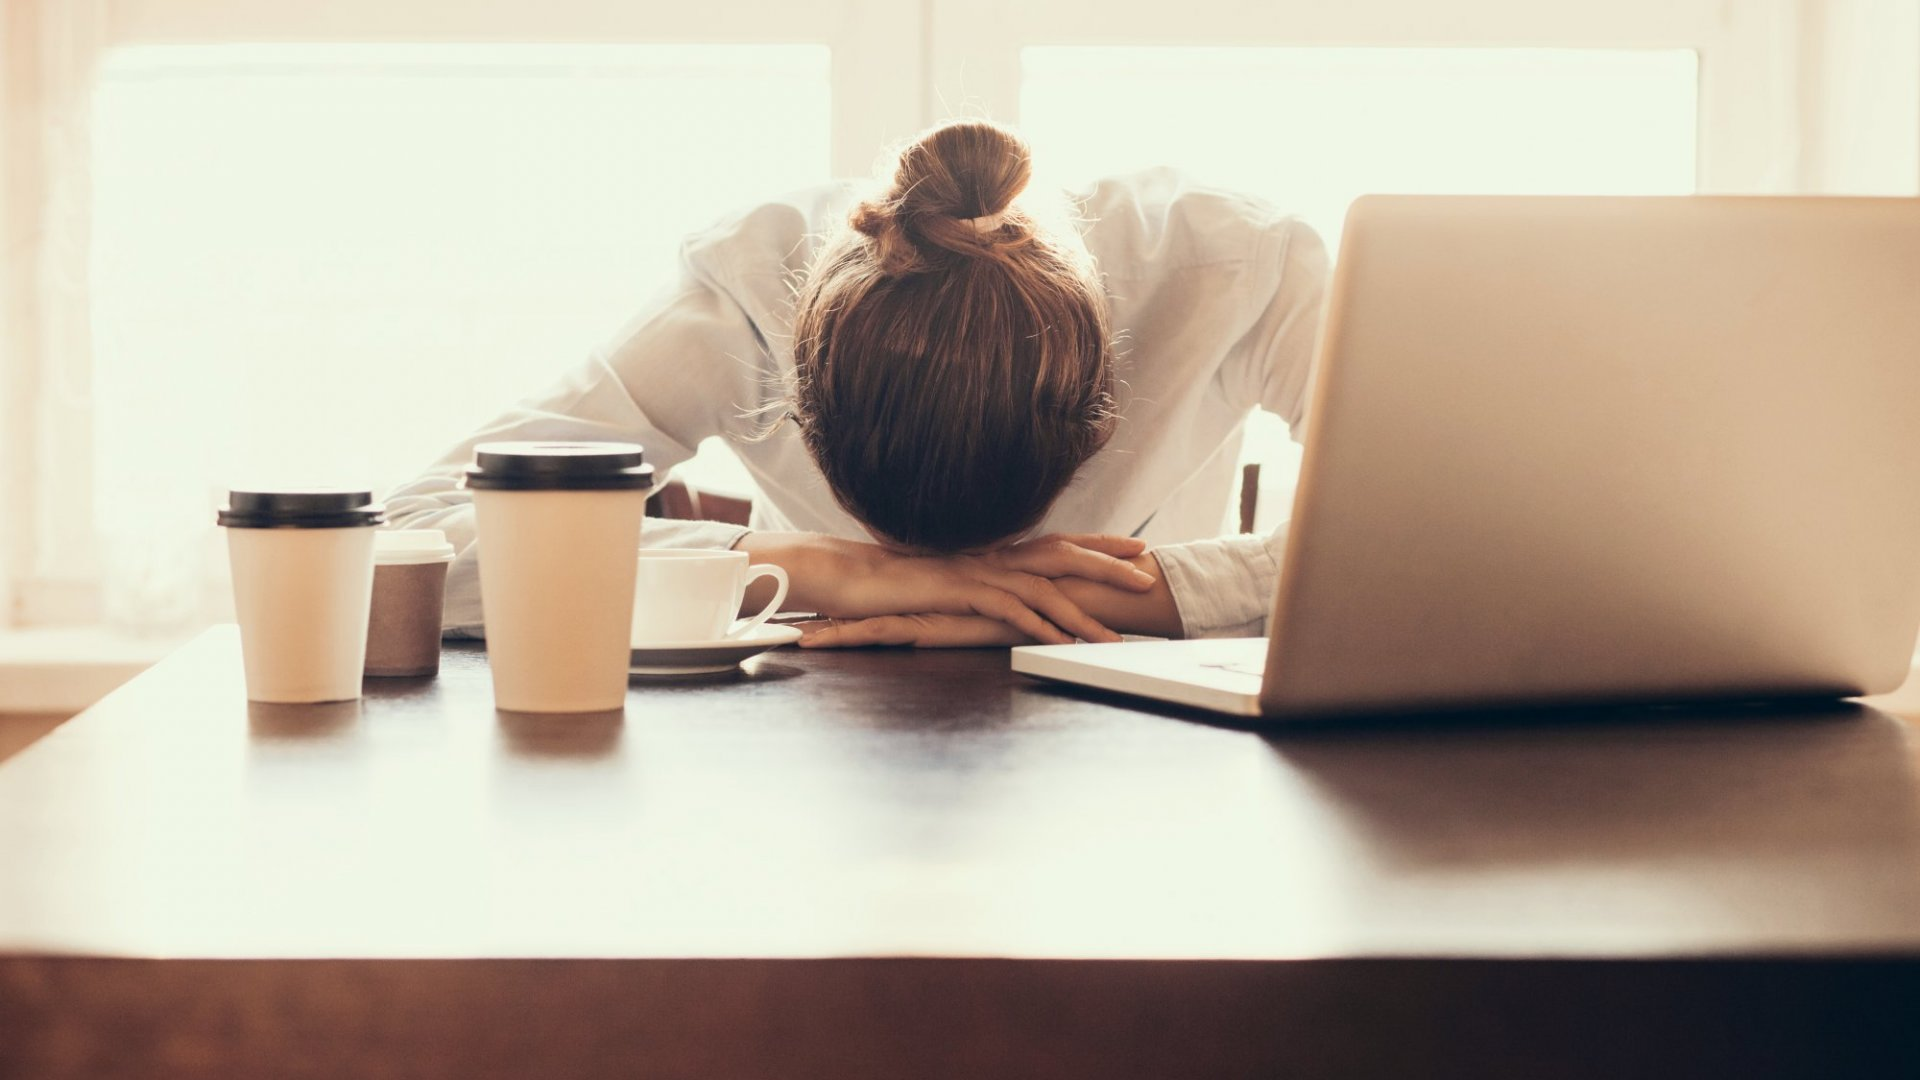 5 Reasons a Dream Job Could Turn Into a Nightmare